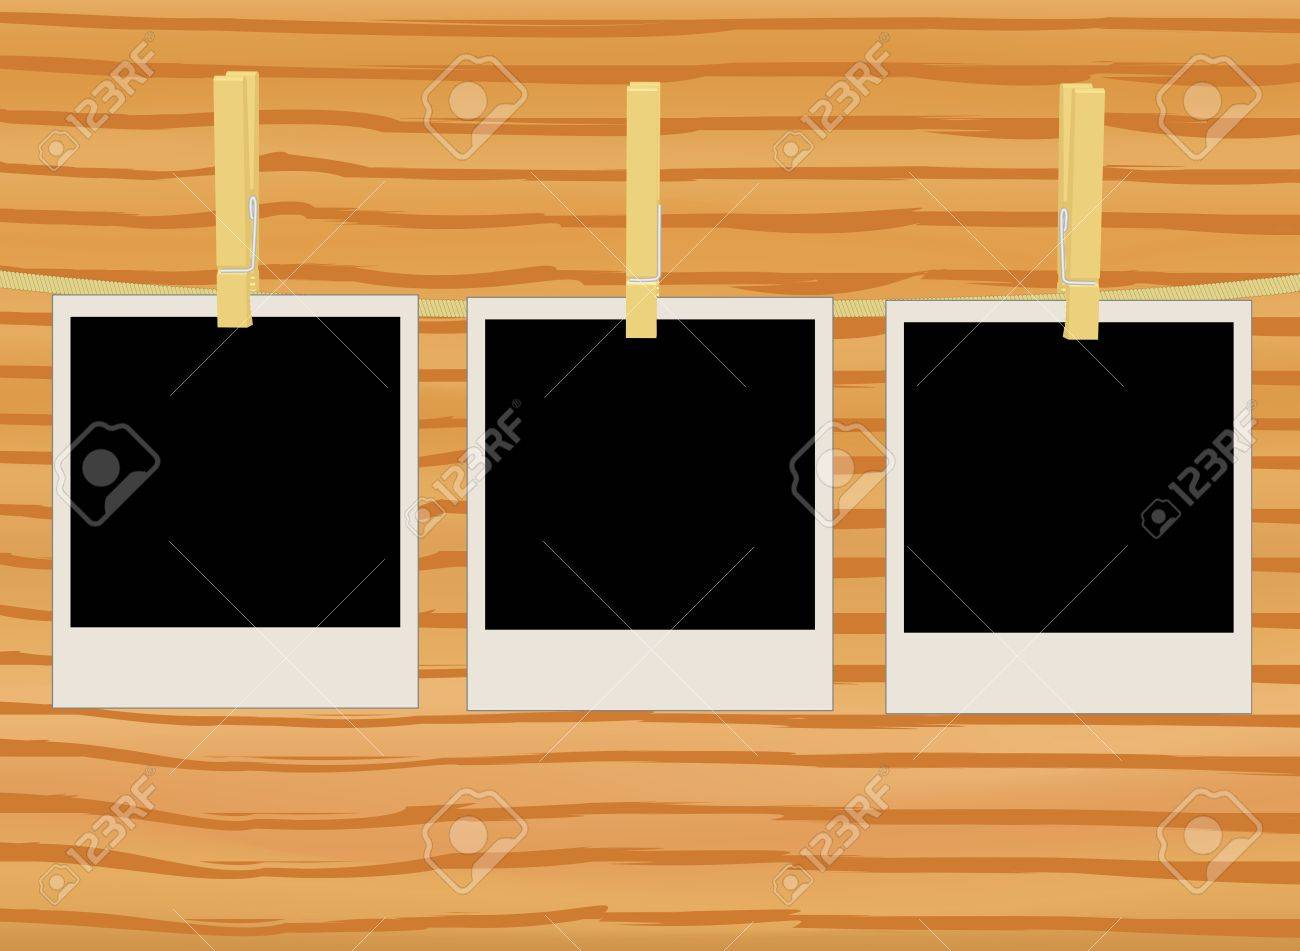 three photos on rope over wooden wall illustration Stock Vector - 12944559